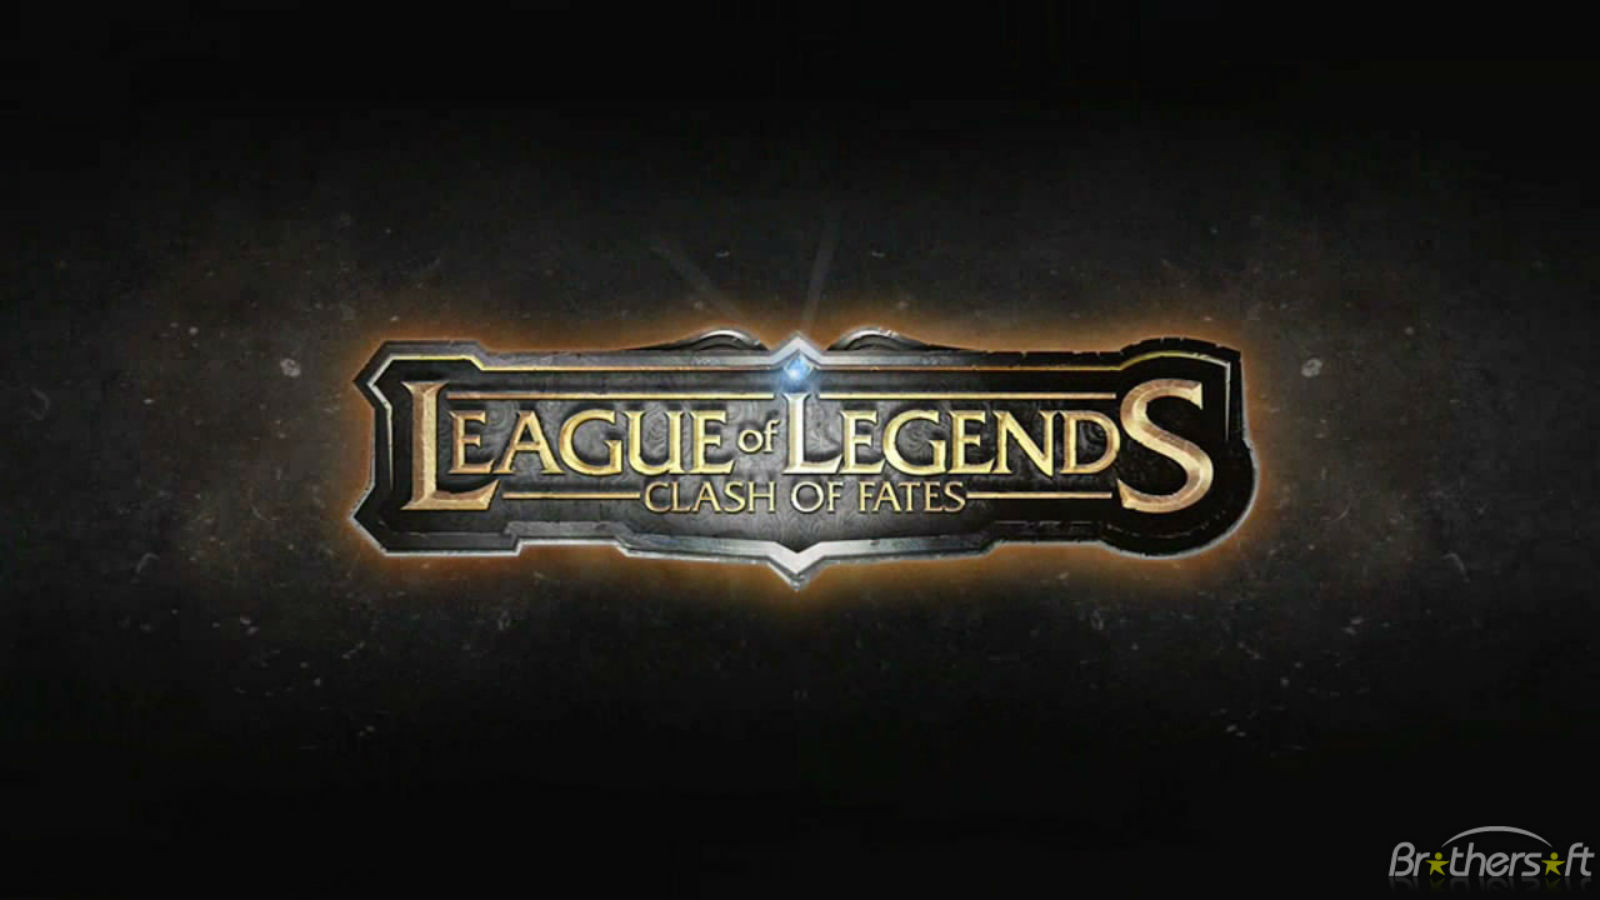 http://2.bp.blogspot.com/-pUIGL7WrrAs/TknEyNwGscI/AAAAAAAAAlE/_fnvK2G_LKo/s1600/vallpaper.net_league_of_legends_logo.jpg